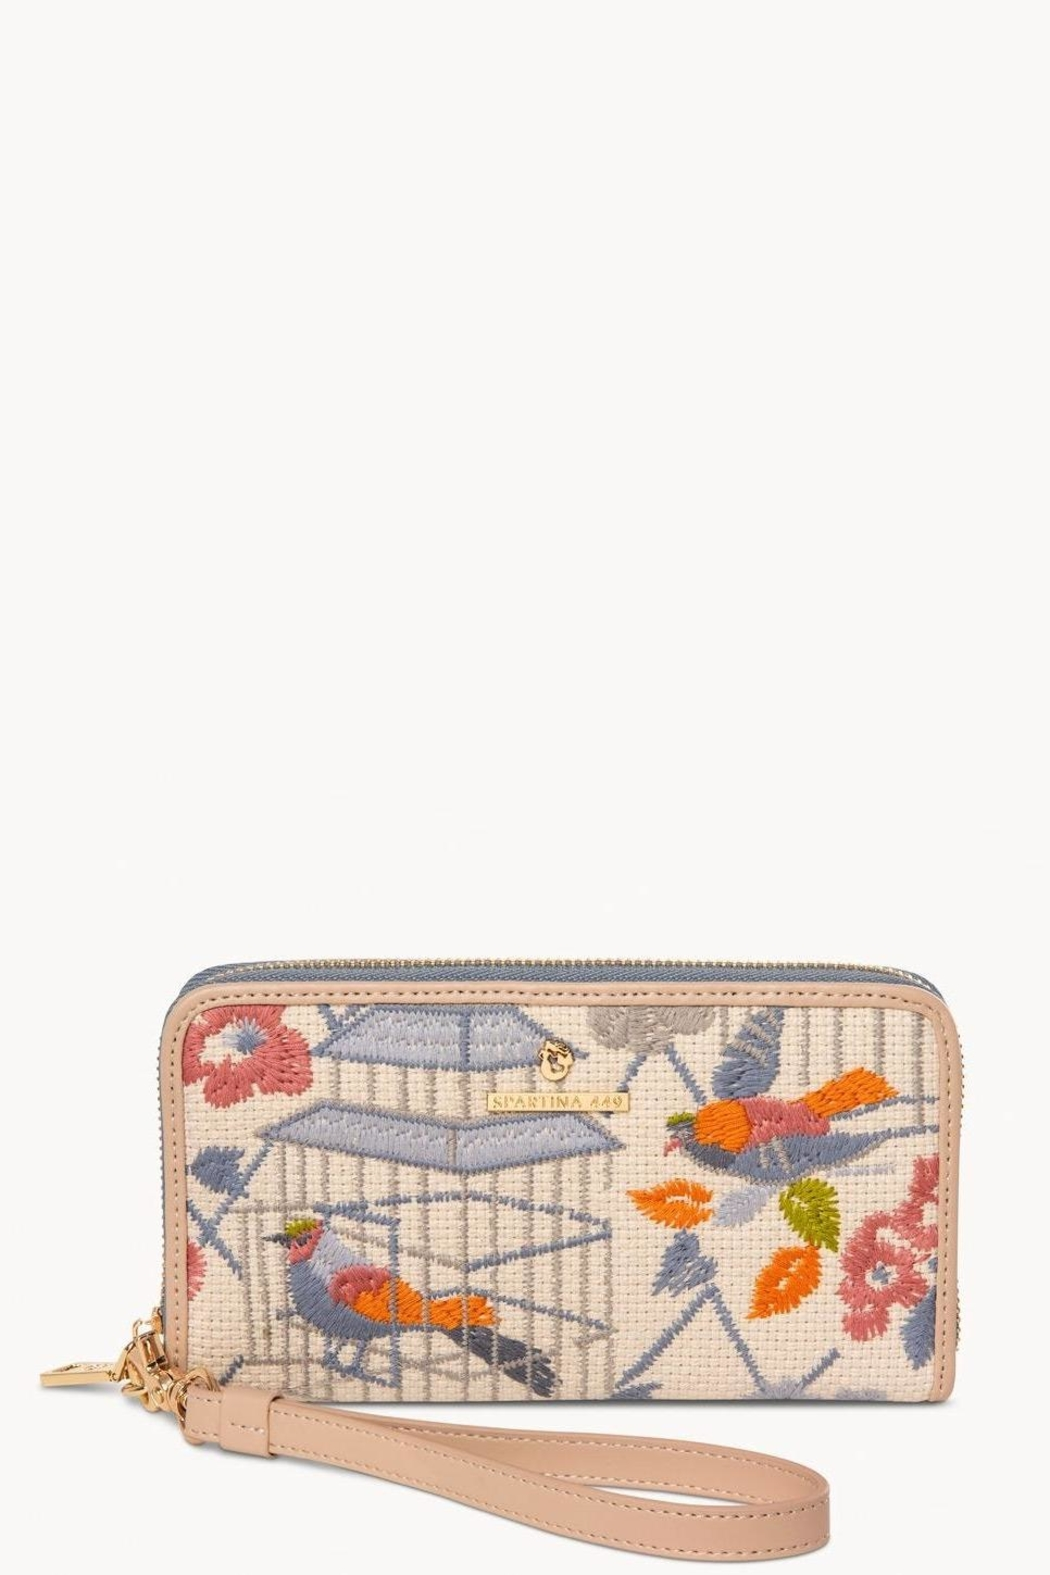 Spartina 449 Songbird Embroidered Wallet - Main Image